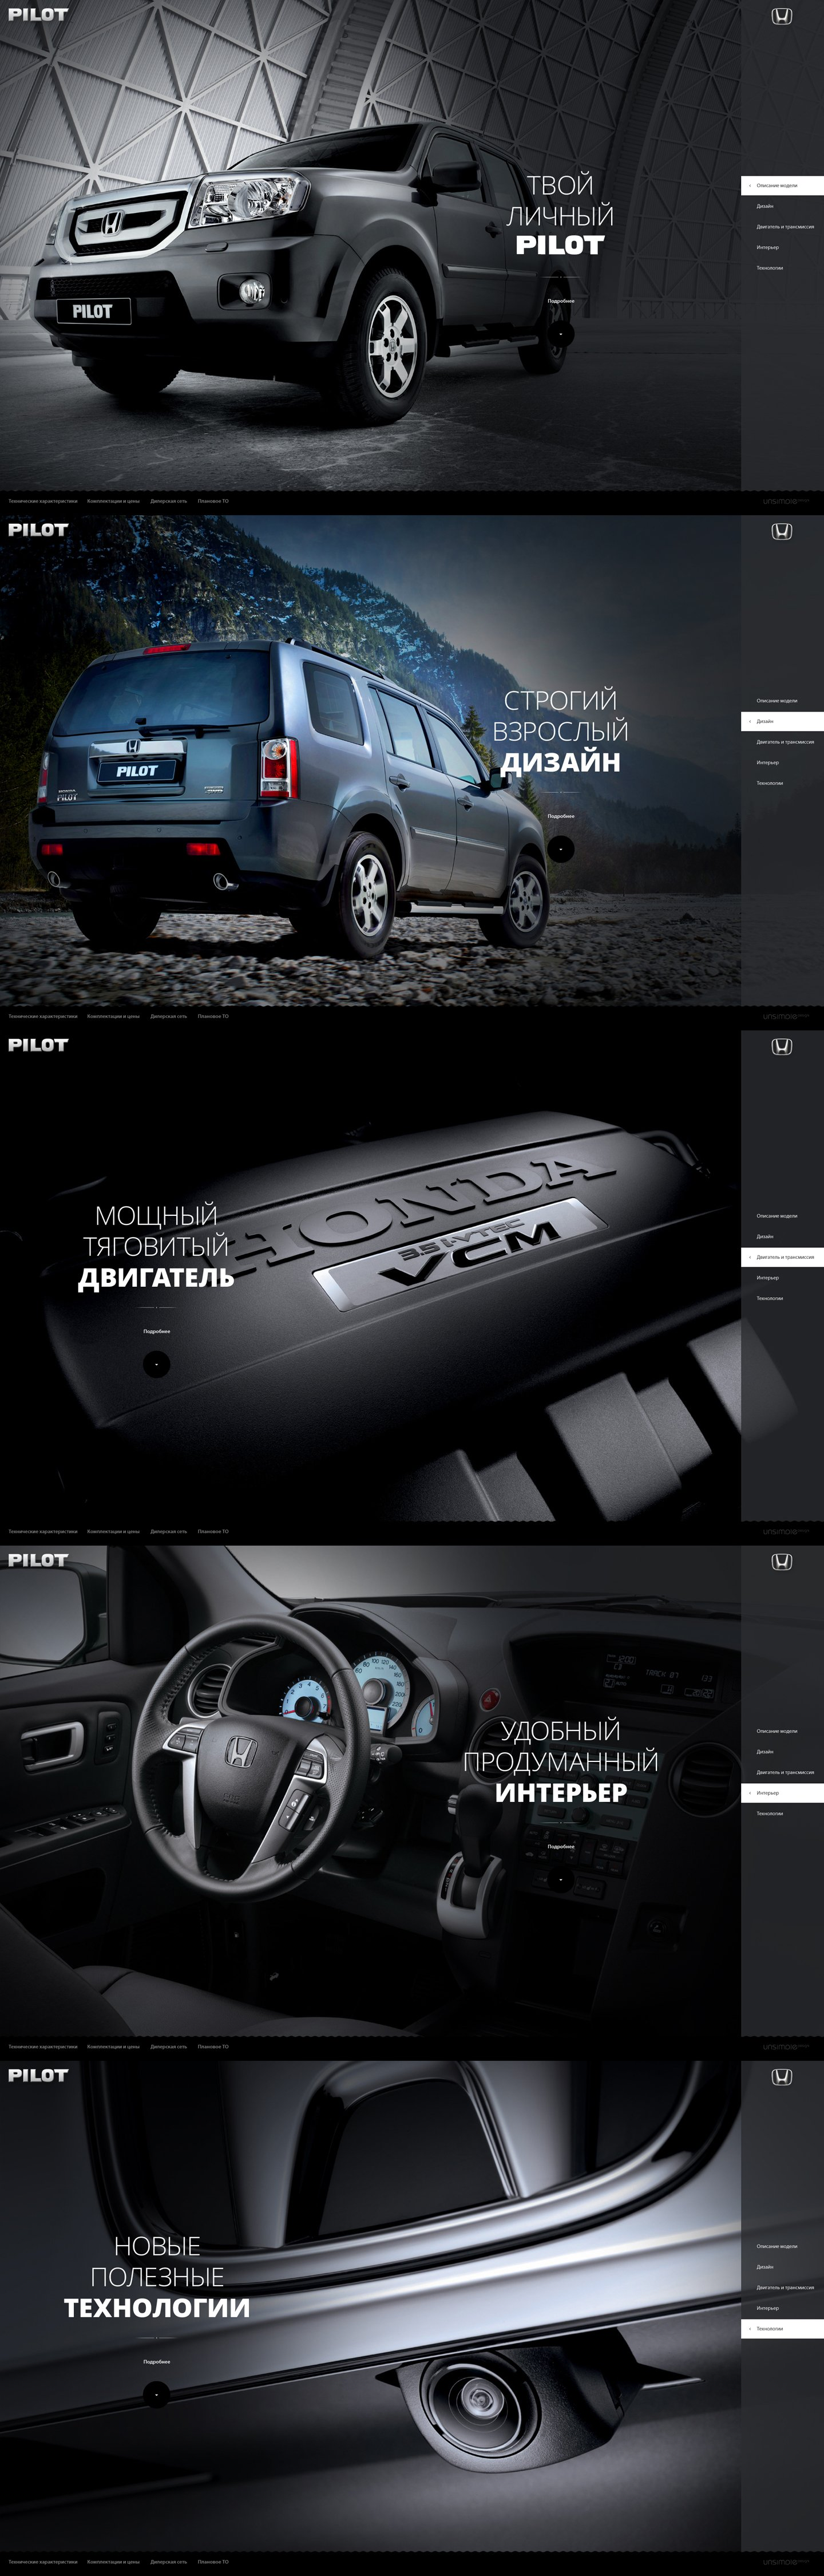 Honda Pilot. Honda Pilot. Promo site design for a car model